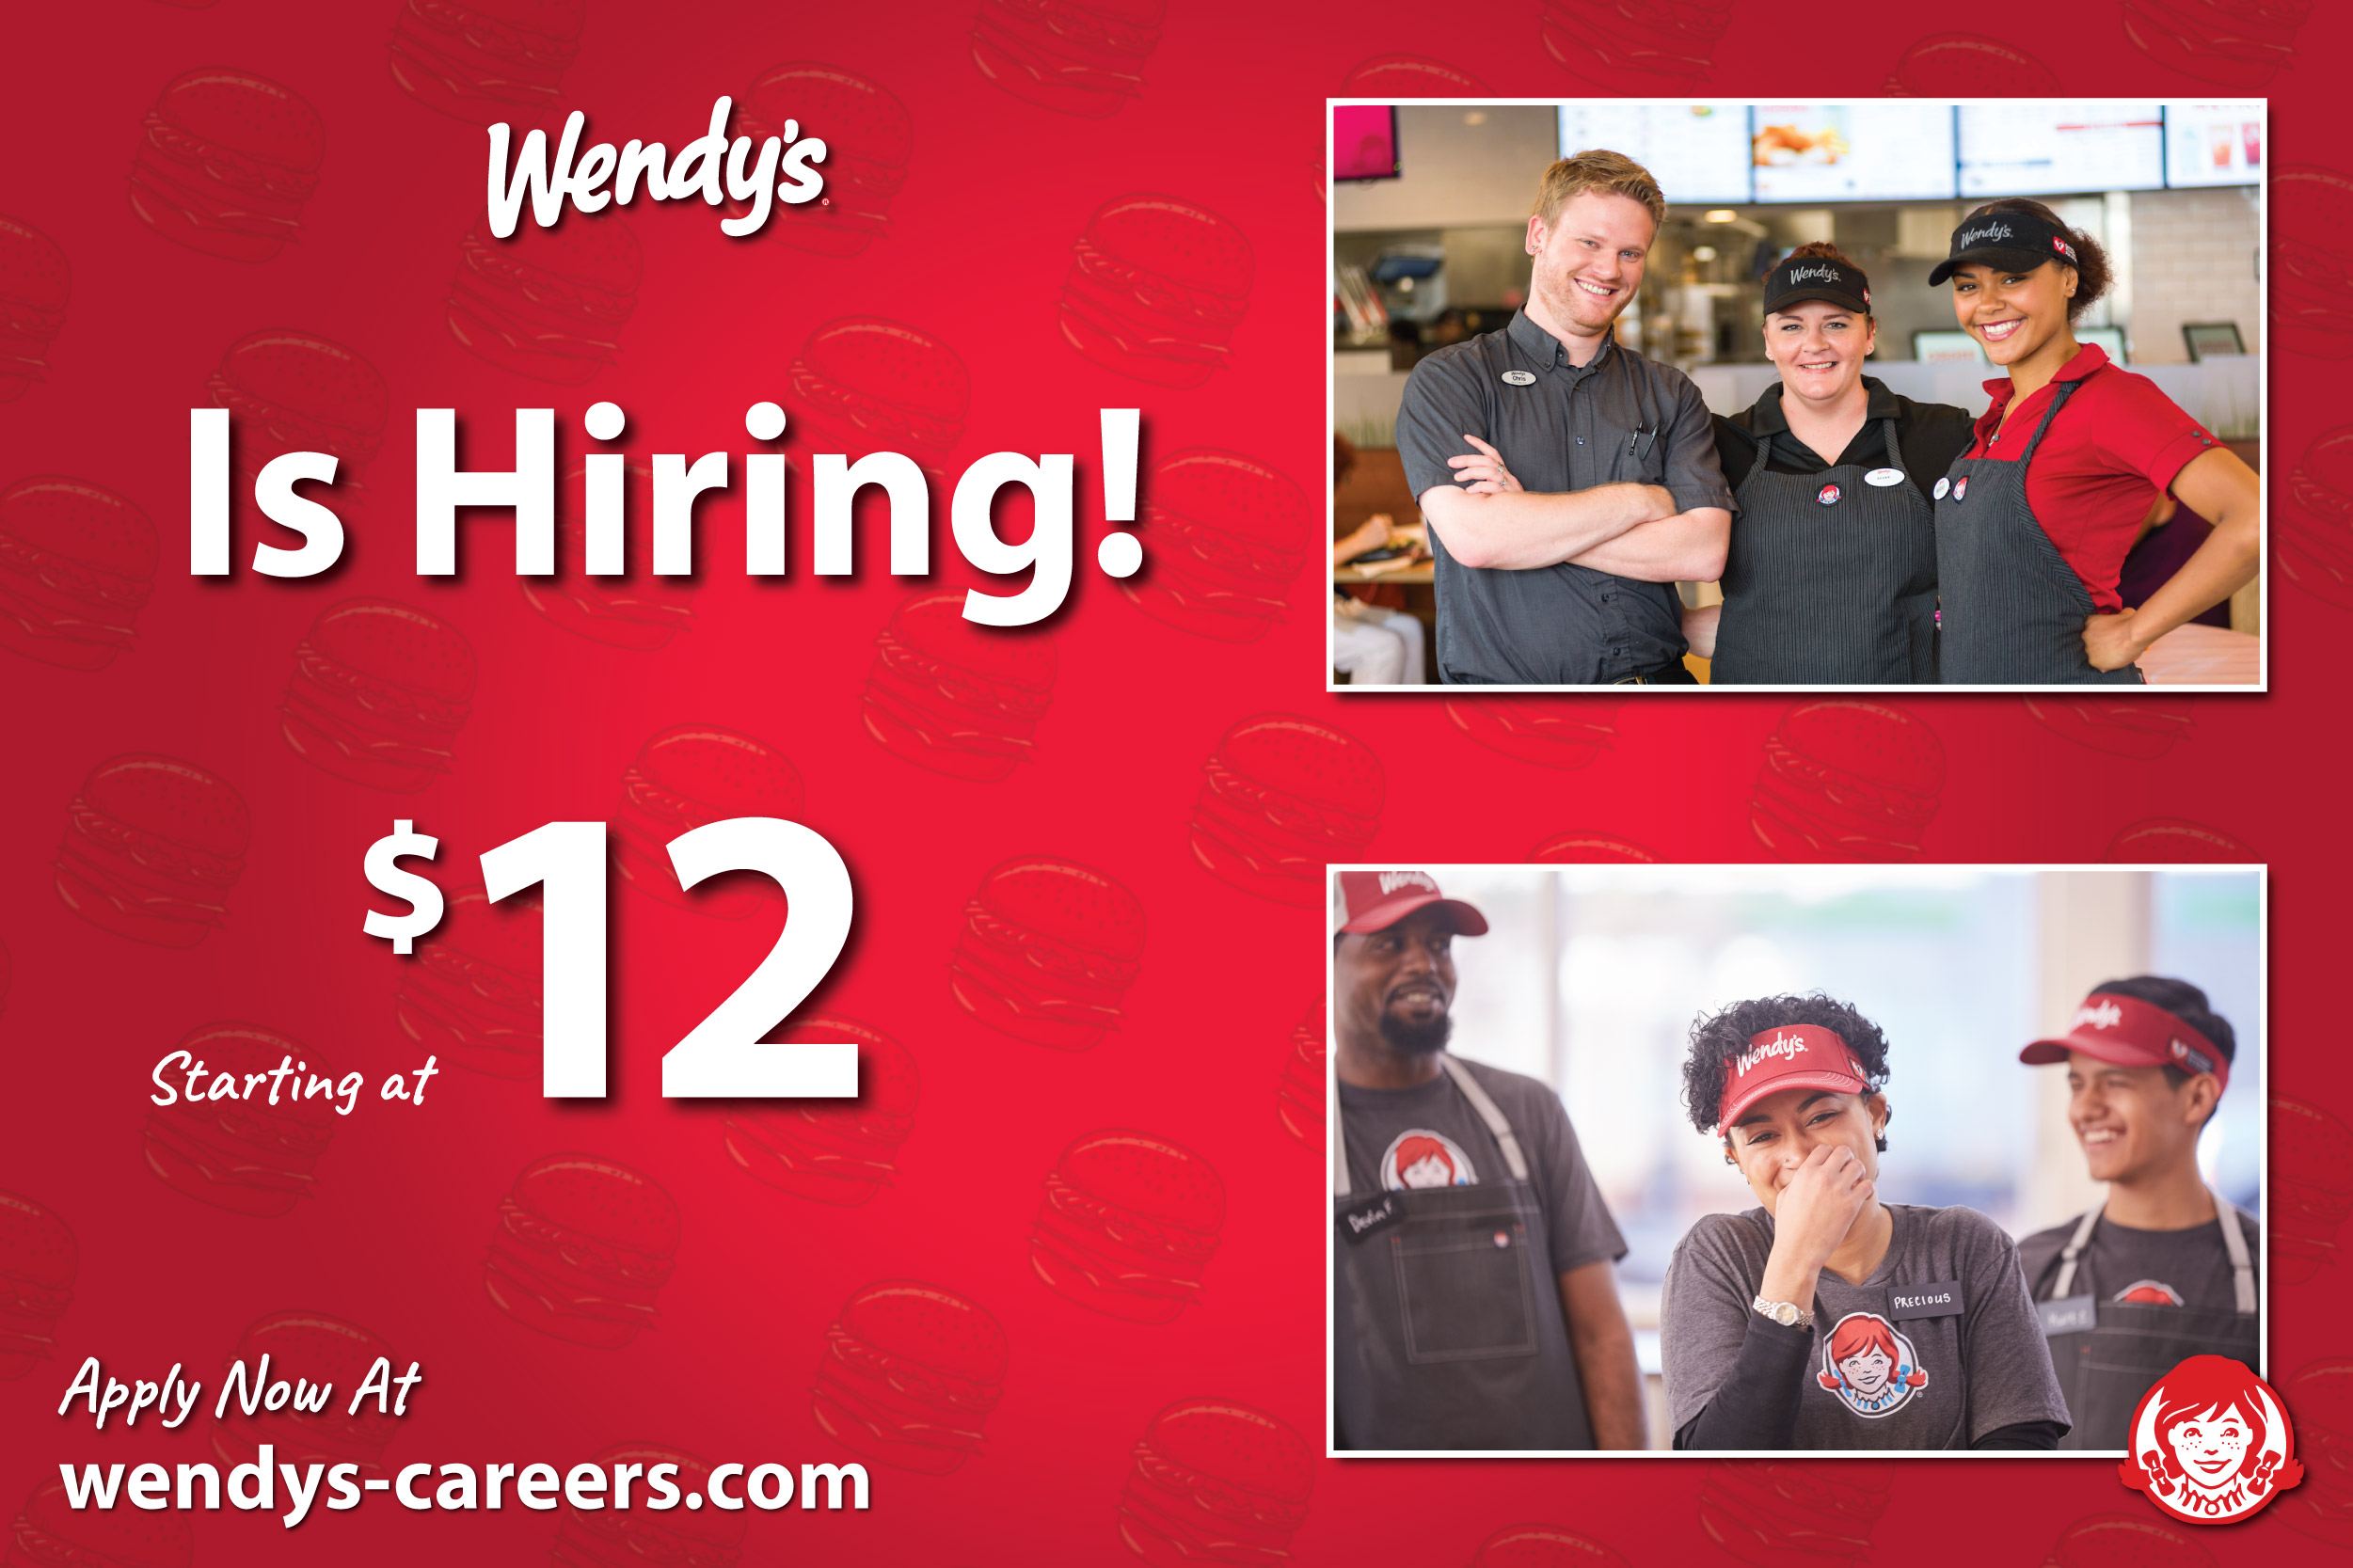 Wendy's is hiring ad